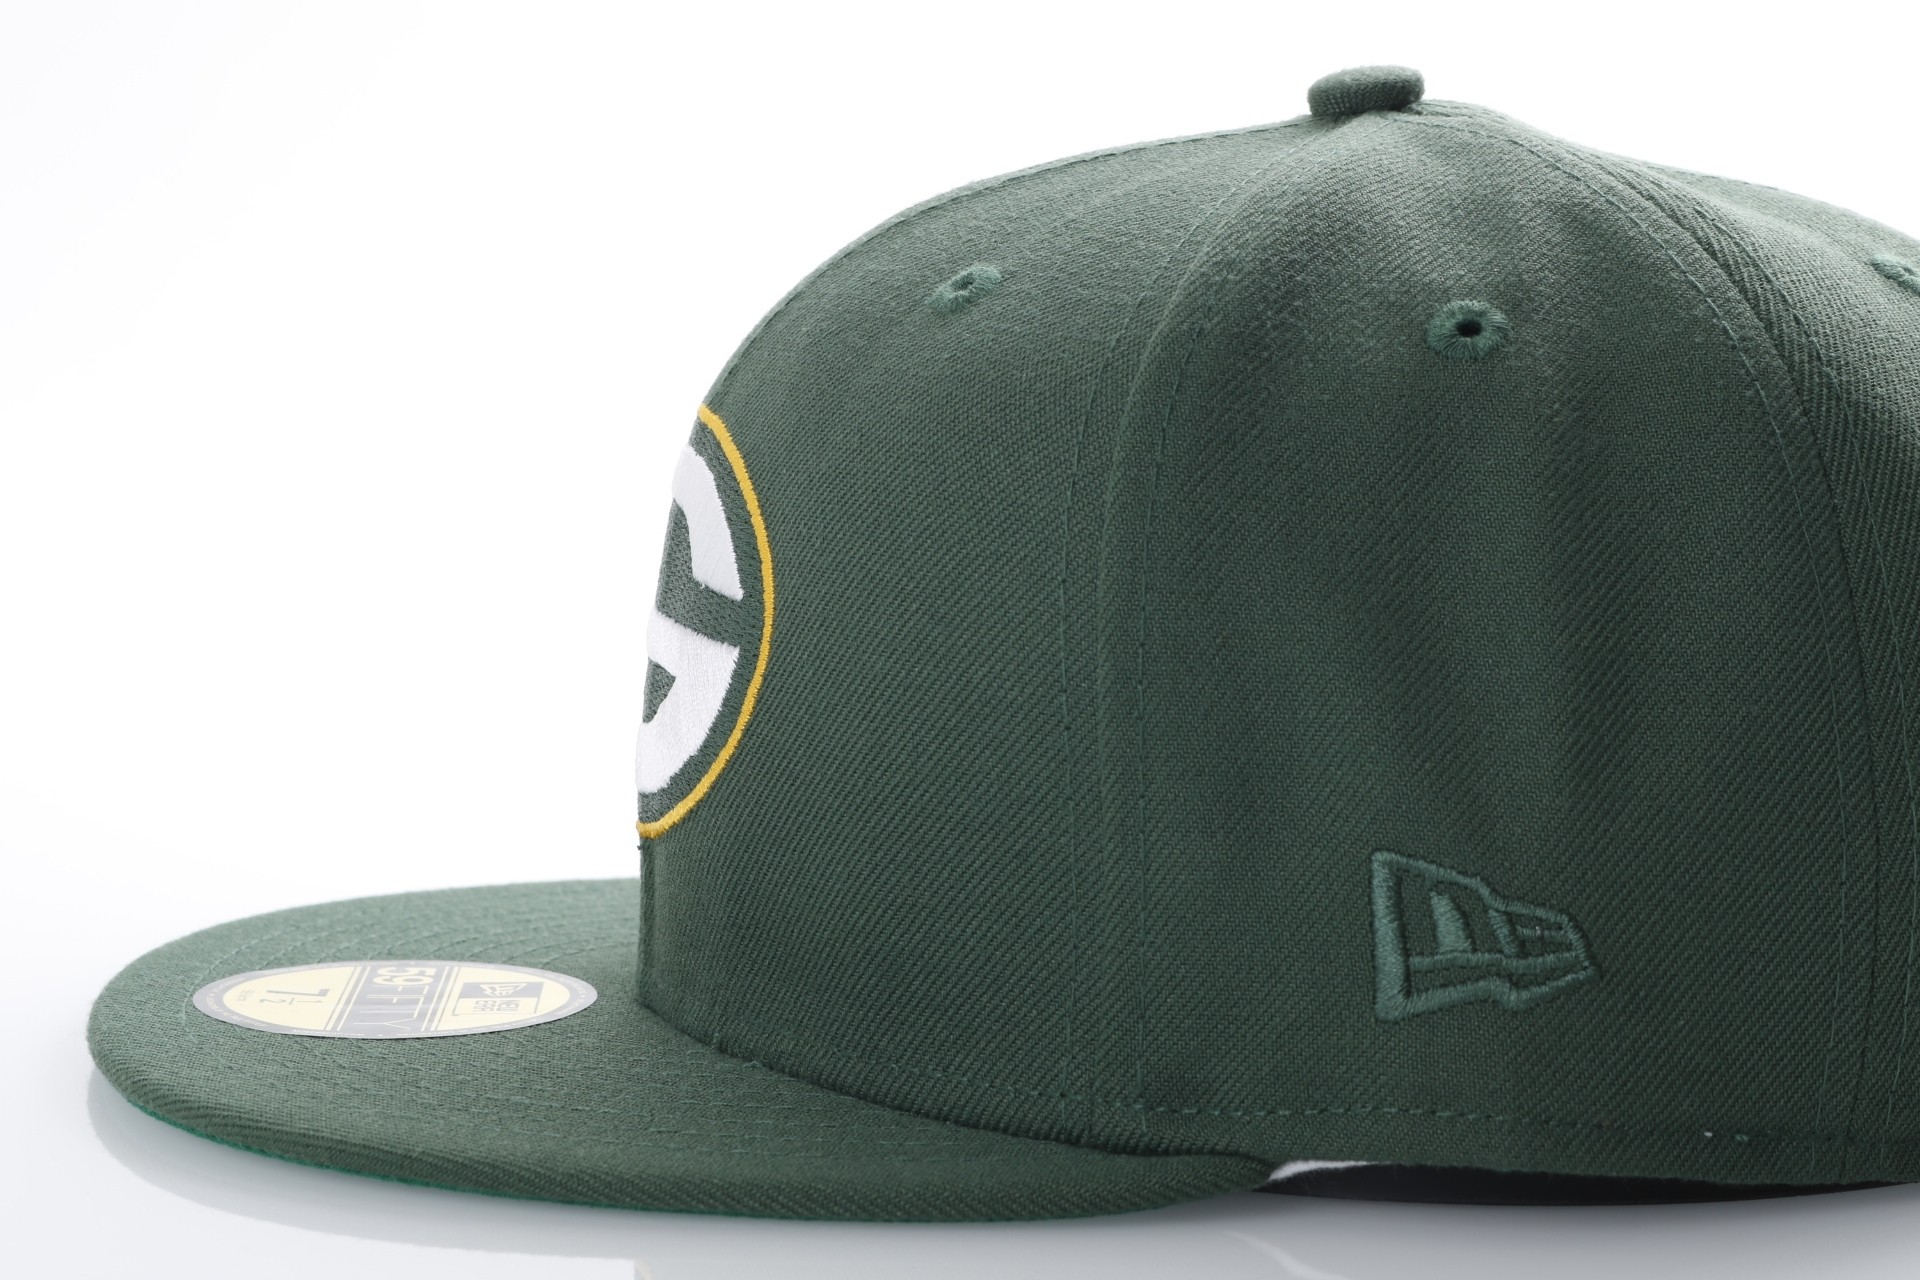 Afbeelding van New Era Fitted Cap Green Bay Packers NFL classic 5950 Green Bay Packers 80536528